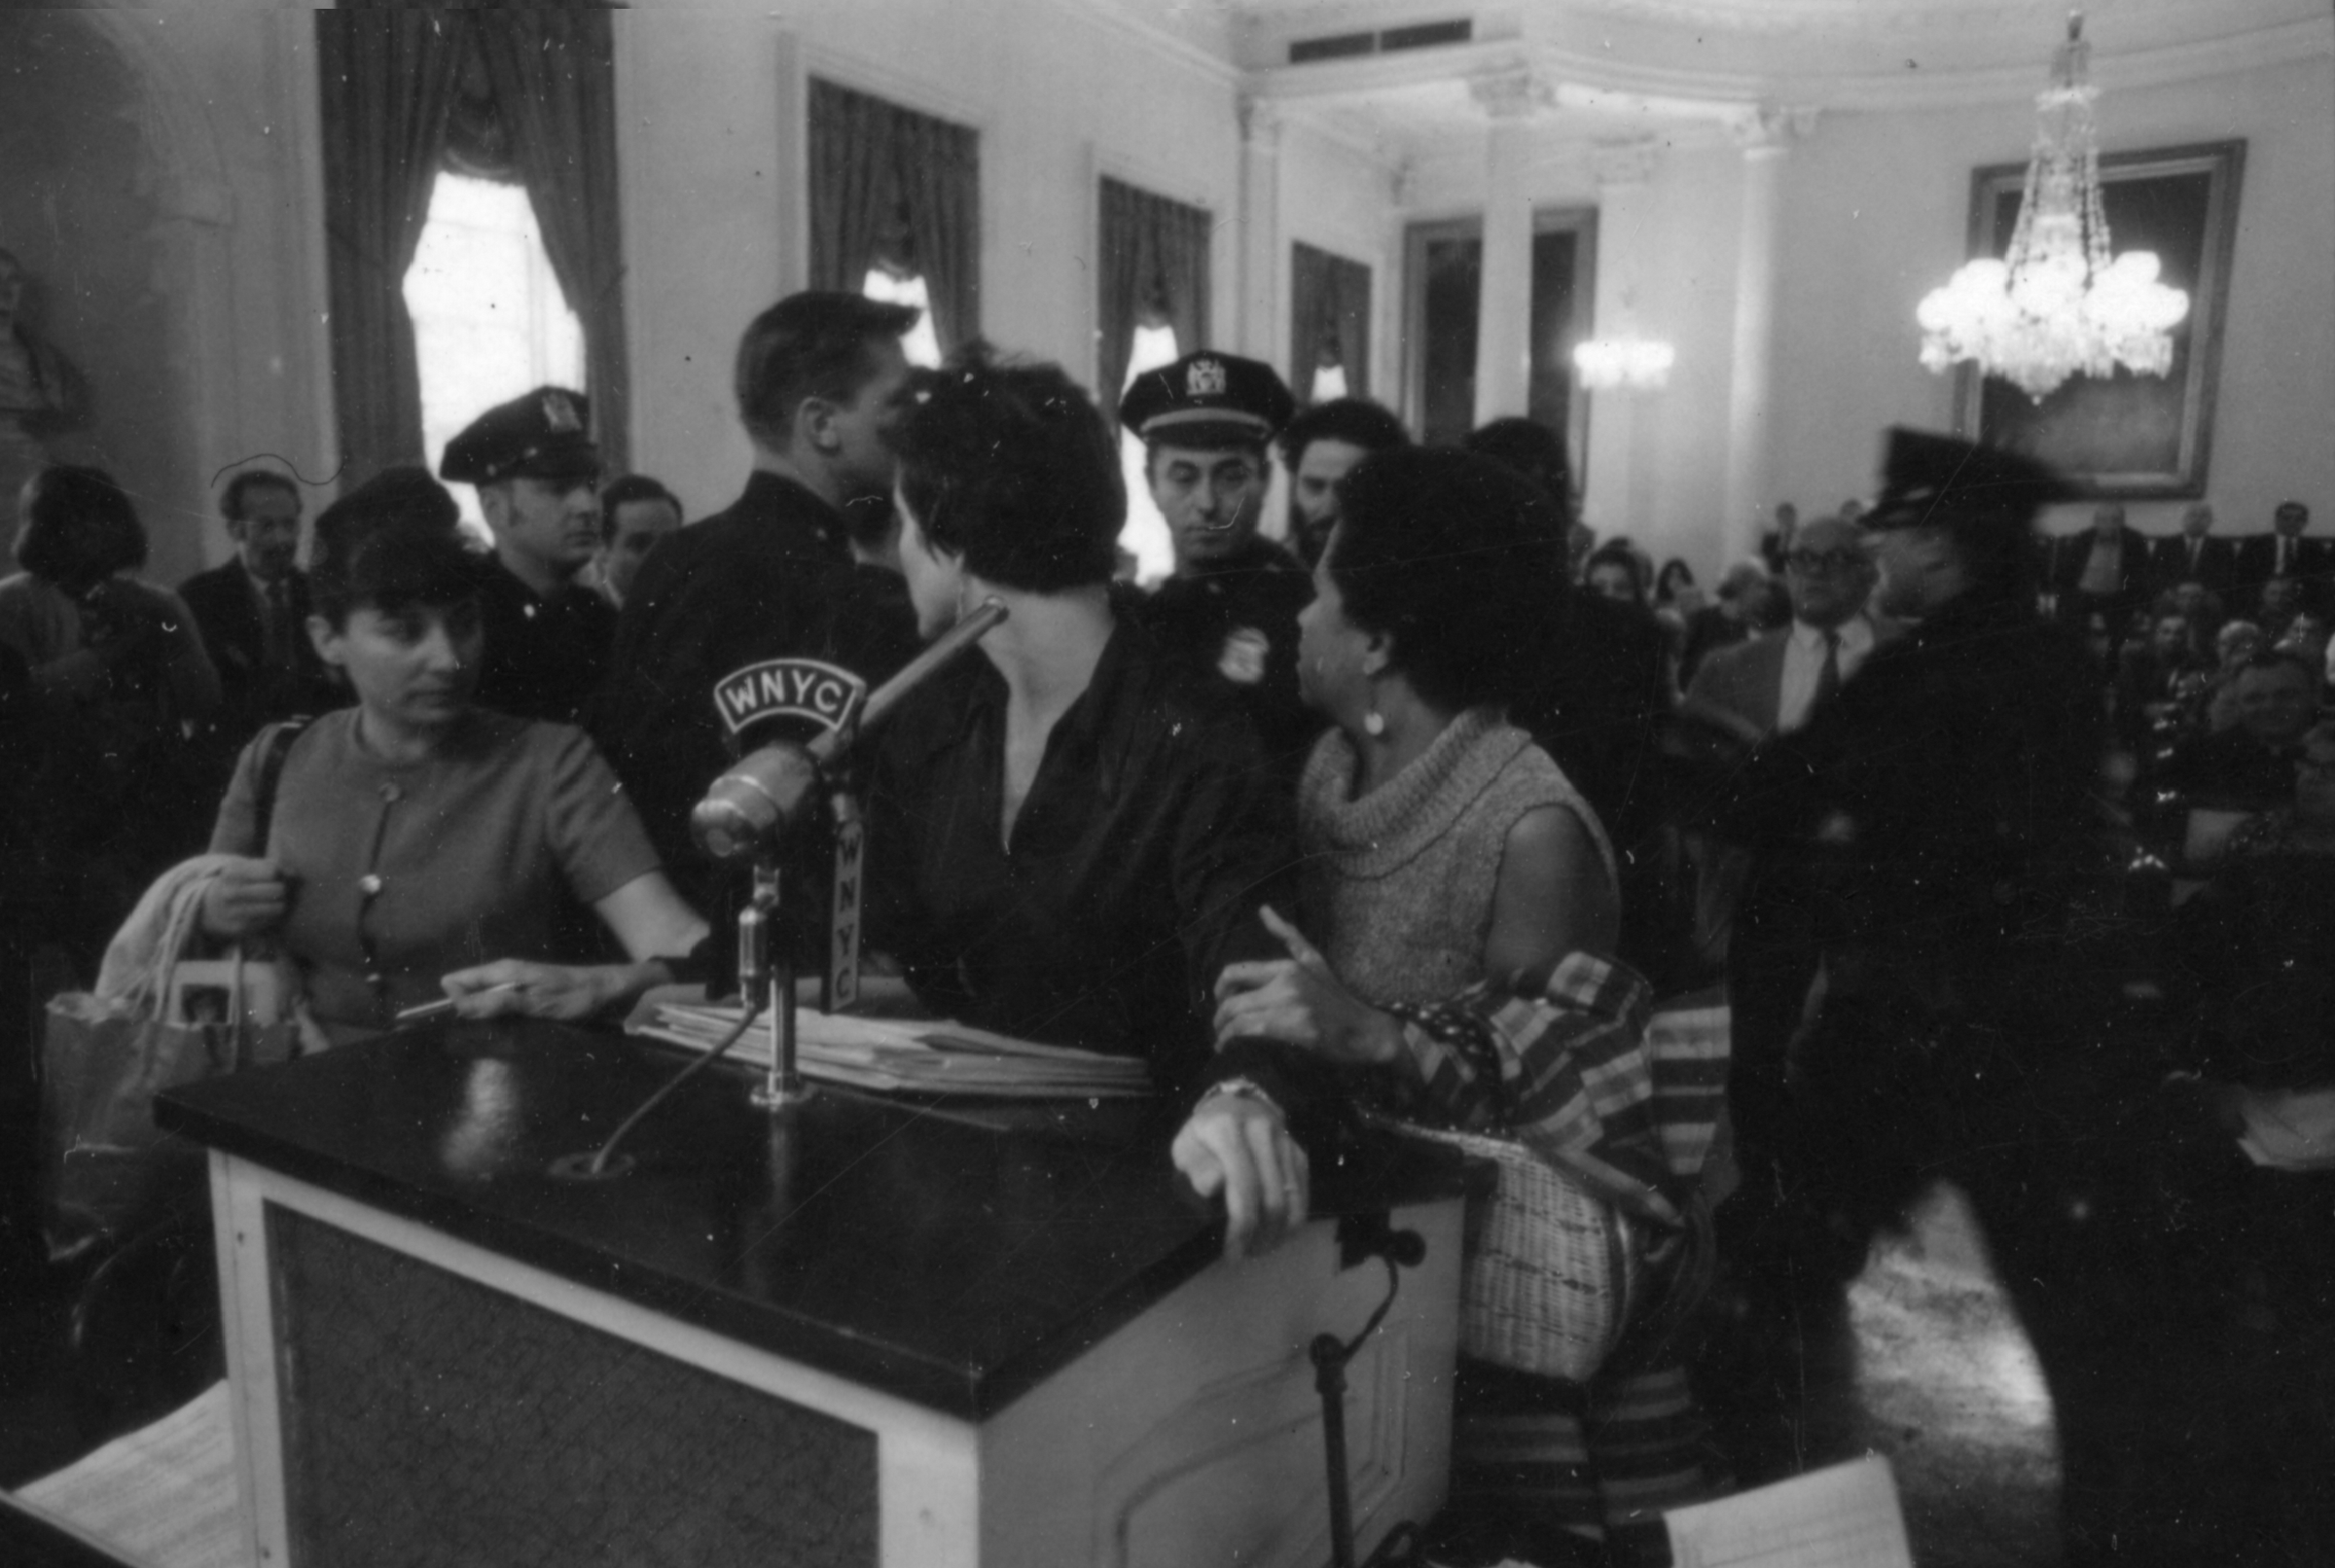 police-at-hearing-1960s-fg